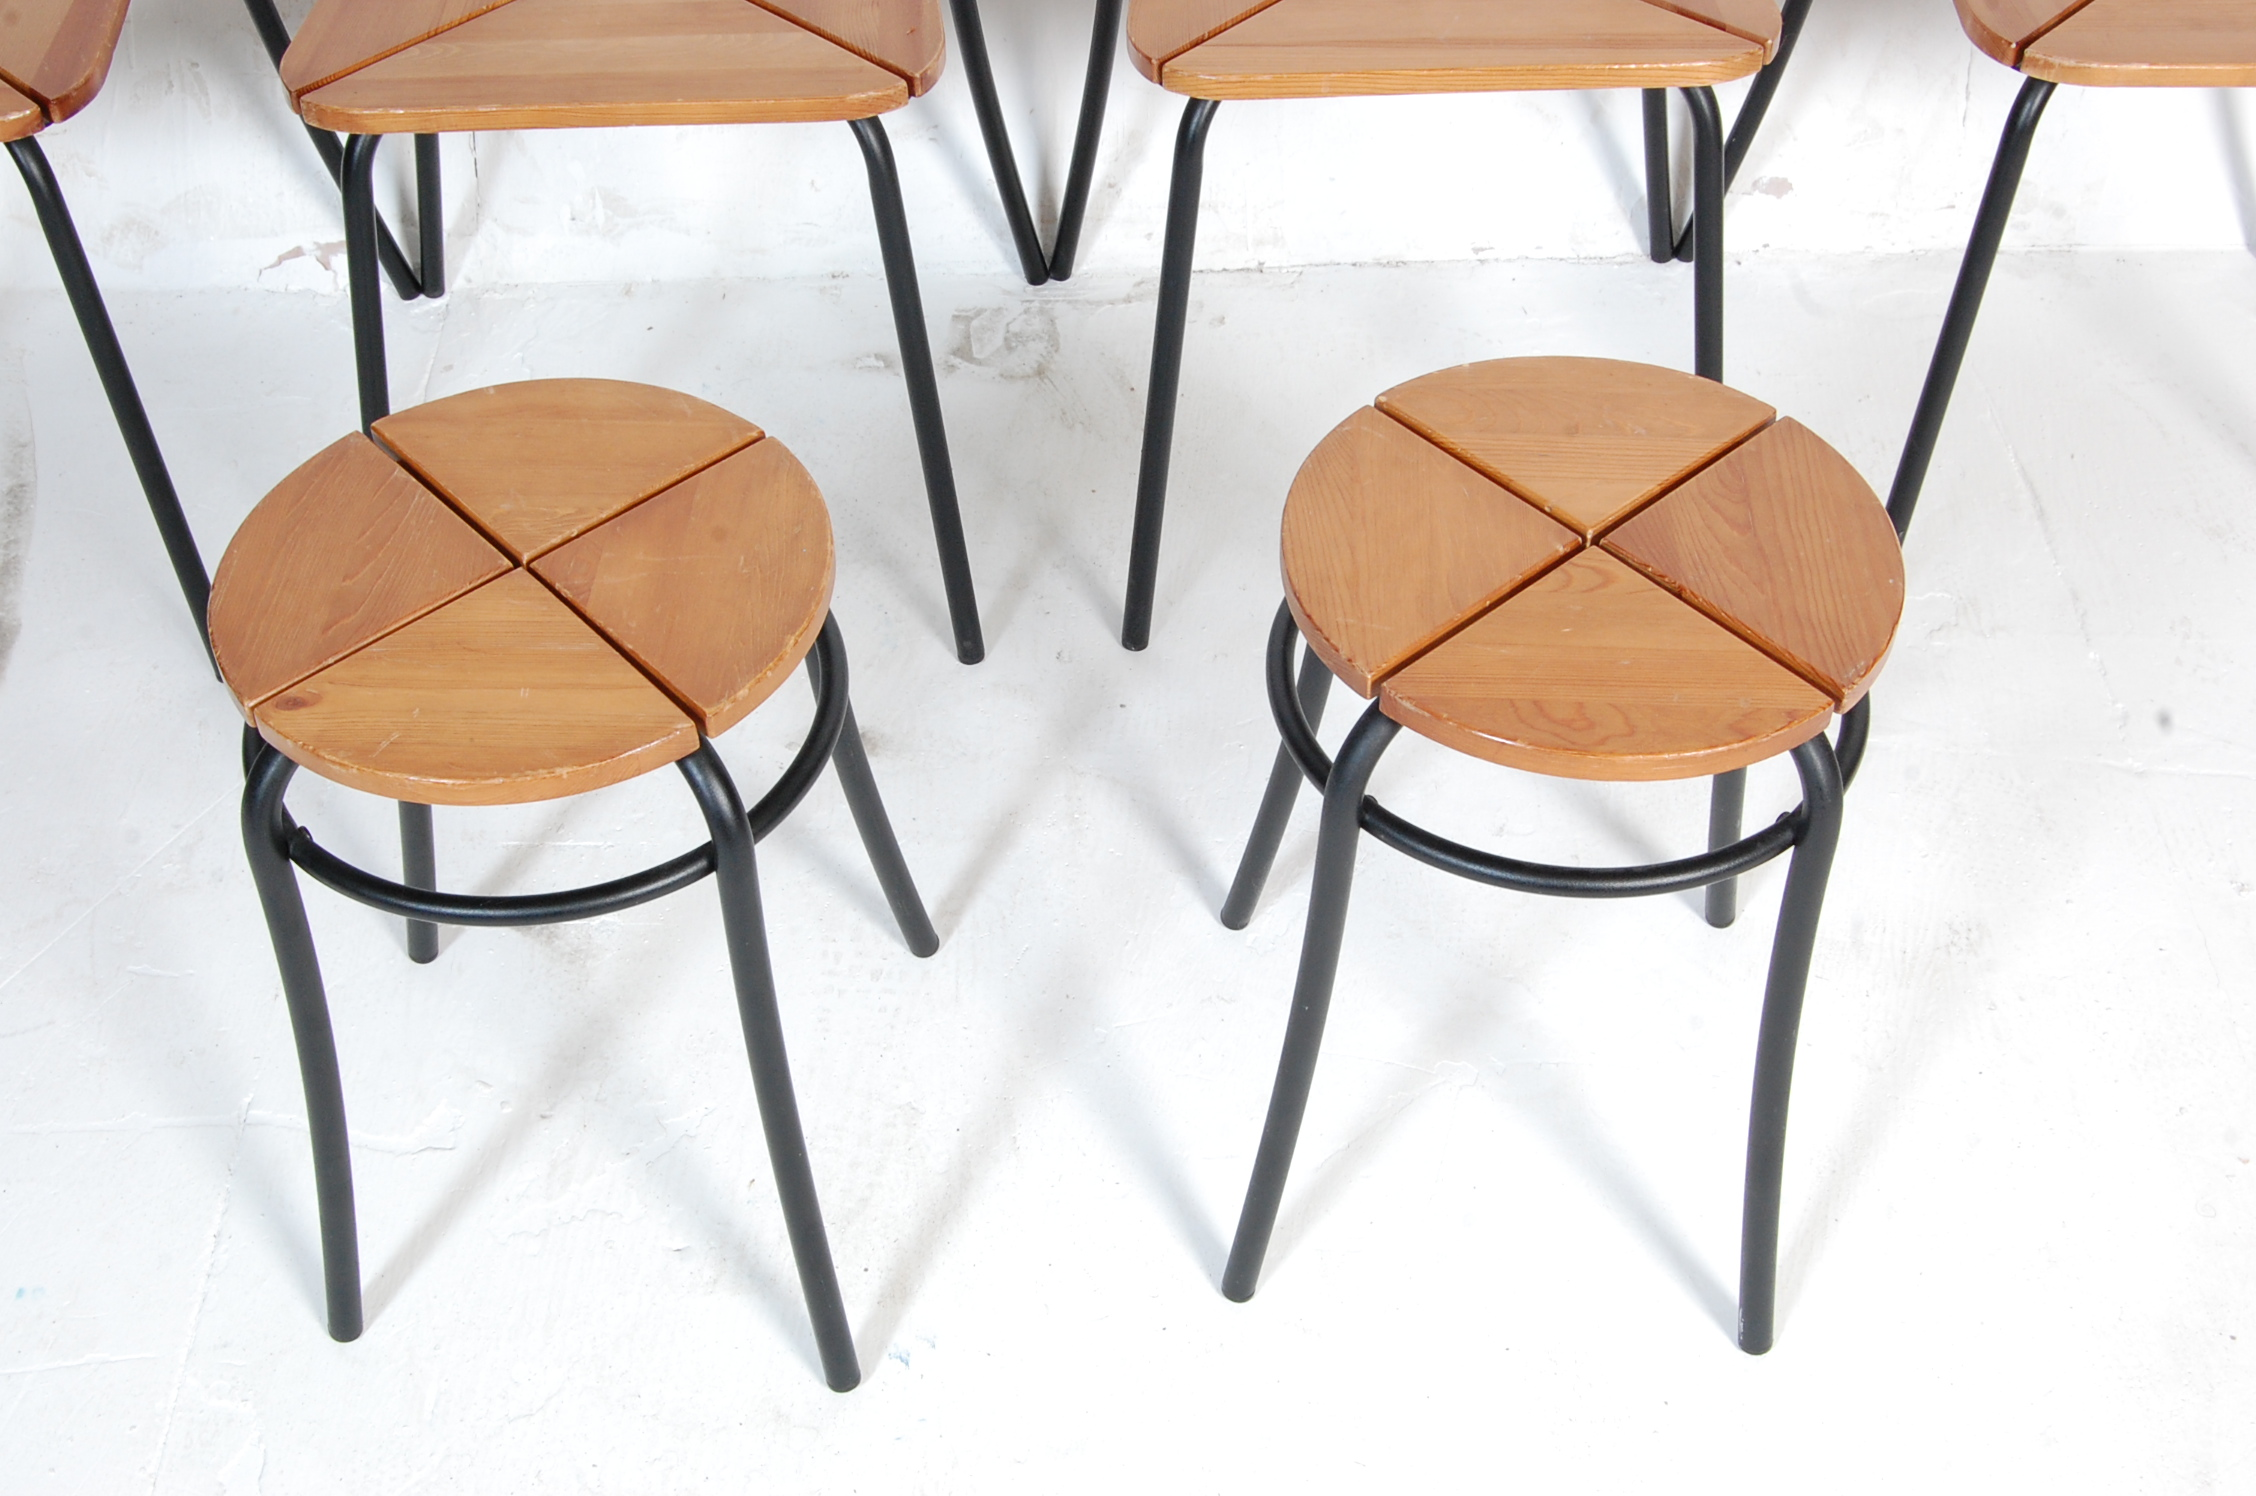 SET OF FOUR CONTEMPORARY INDUSTRIAL DINING CHAIRS - Image 5 of 7